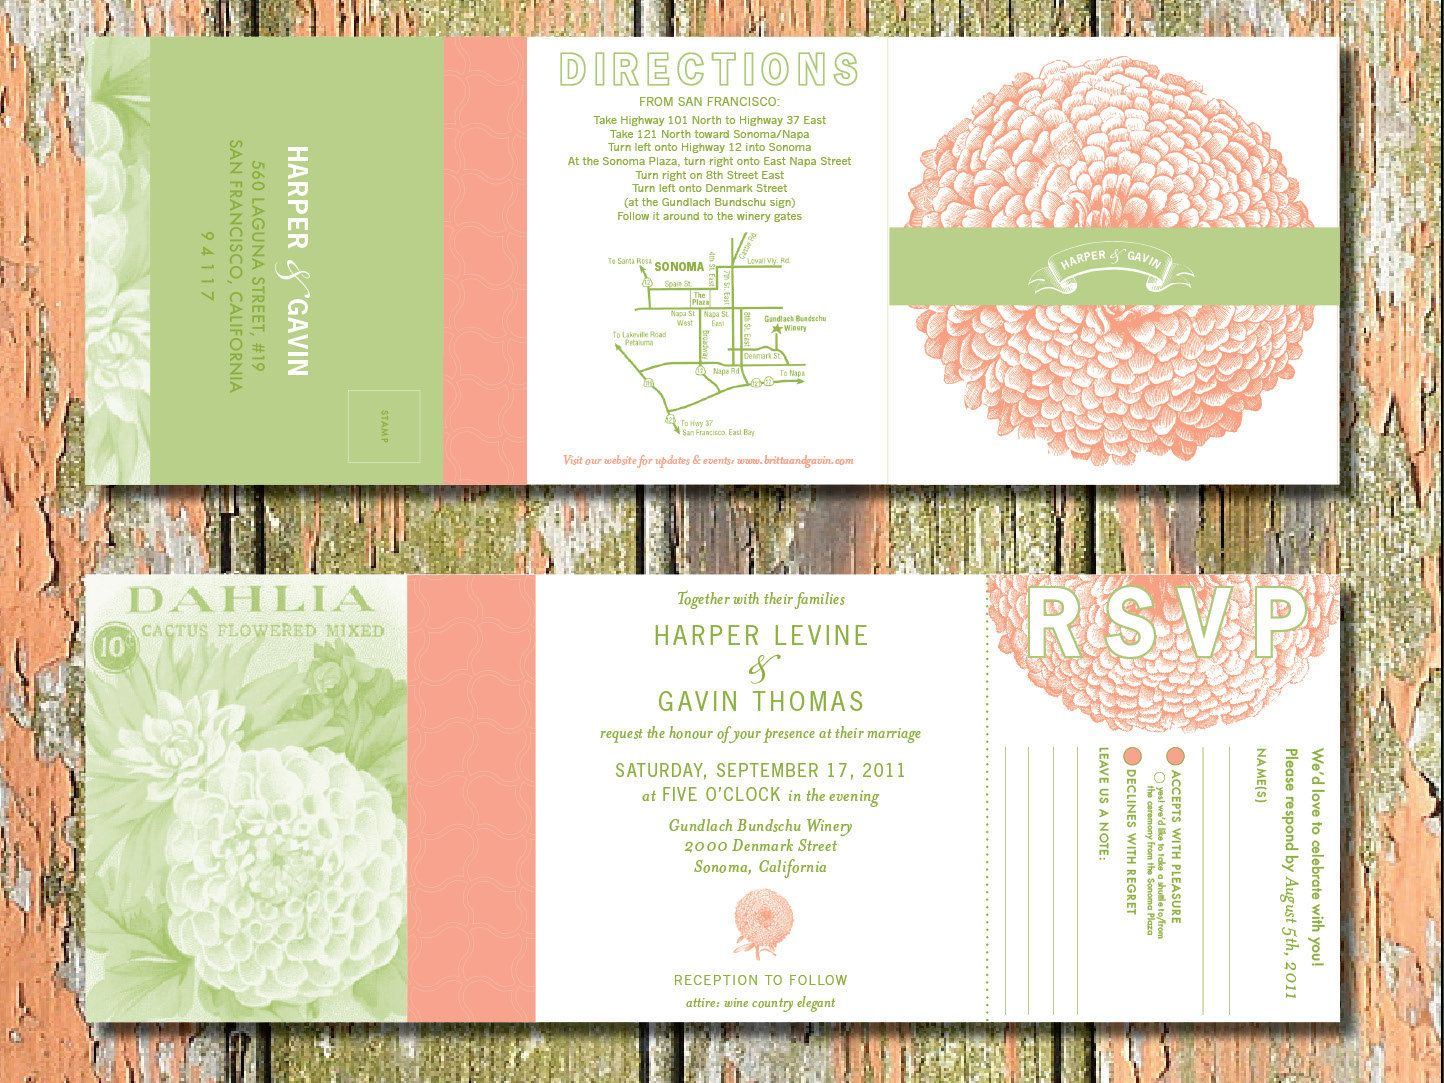 all-in-one #invitation (With images) | Wedding invitations ...